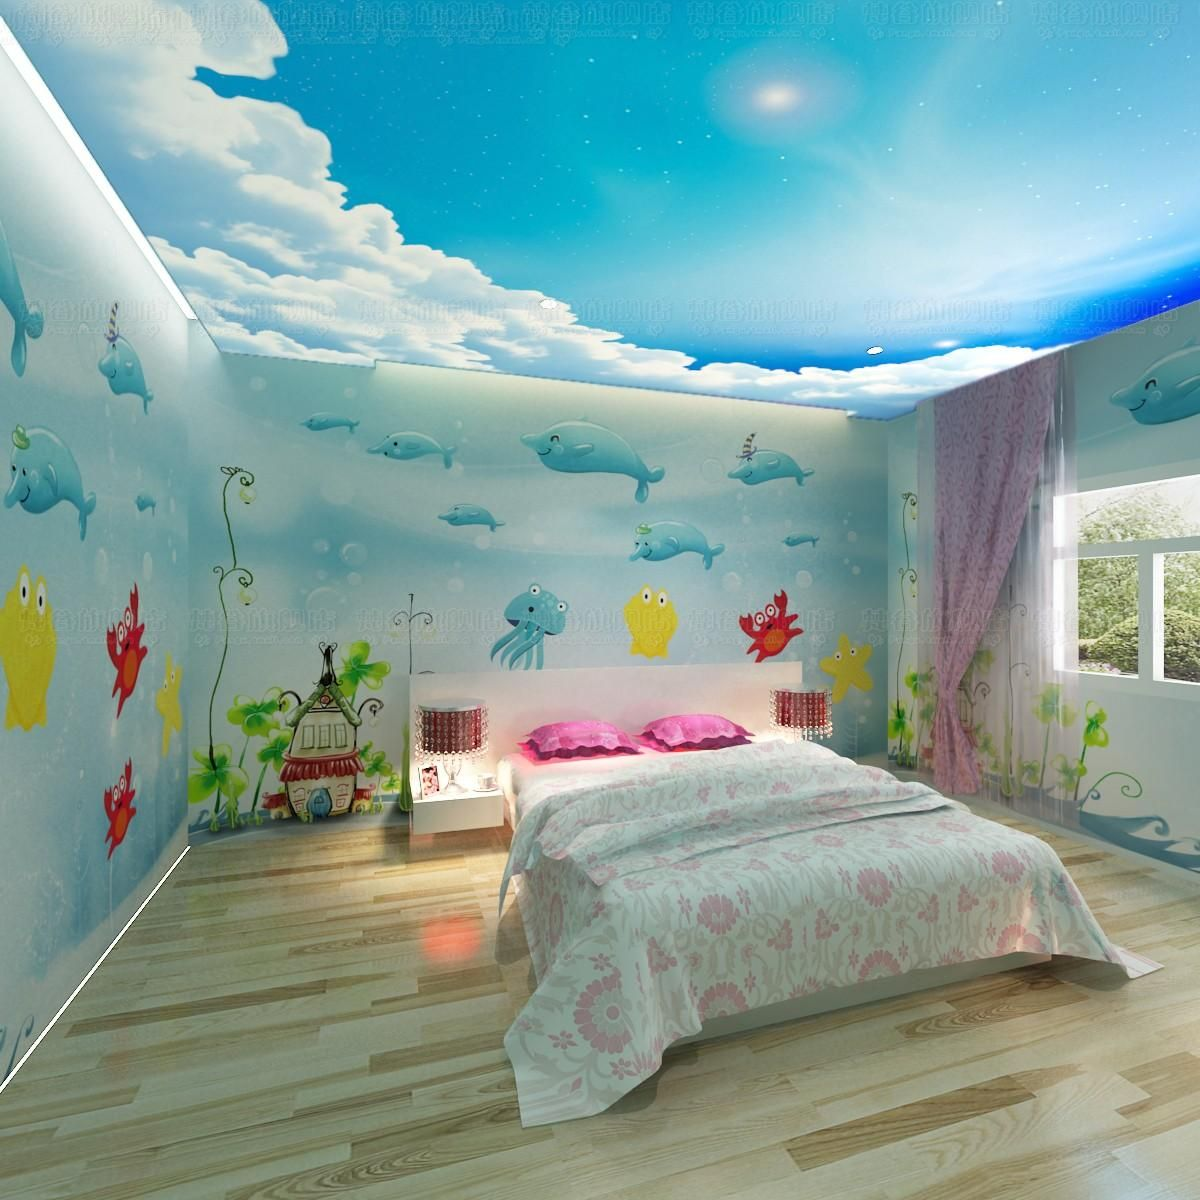 Mural De Mar En Pared Habitacion Buscar Con Google Kids Bedroom Wallpaper Themed Kids Room Kids Room Wallpaper